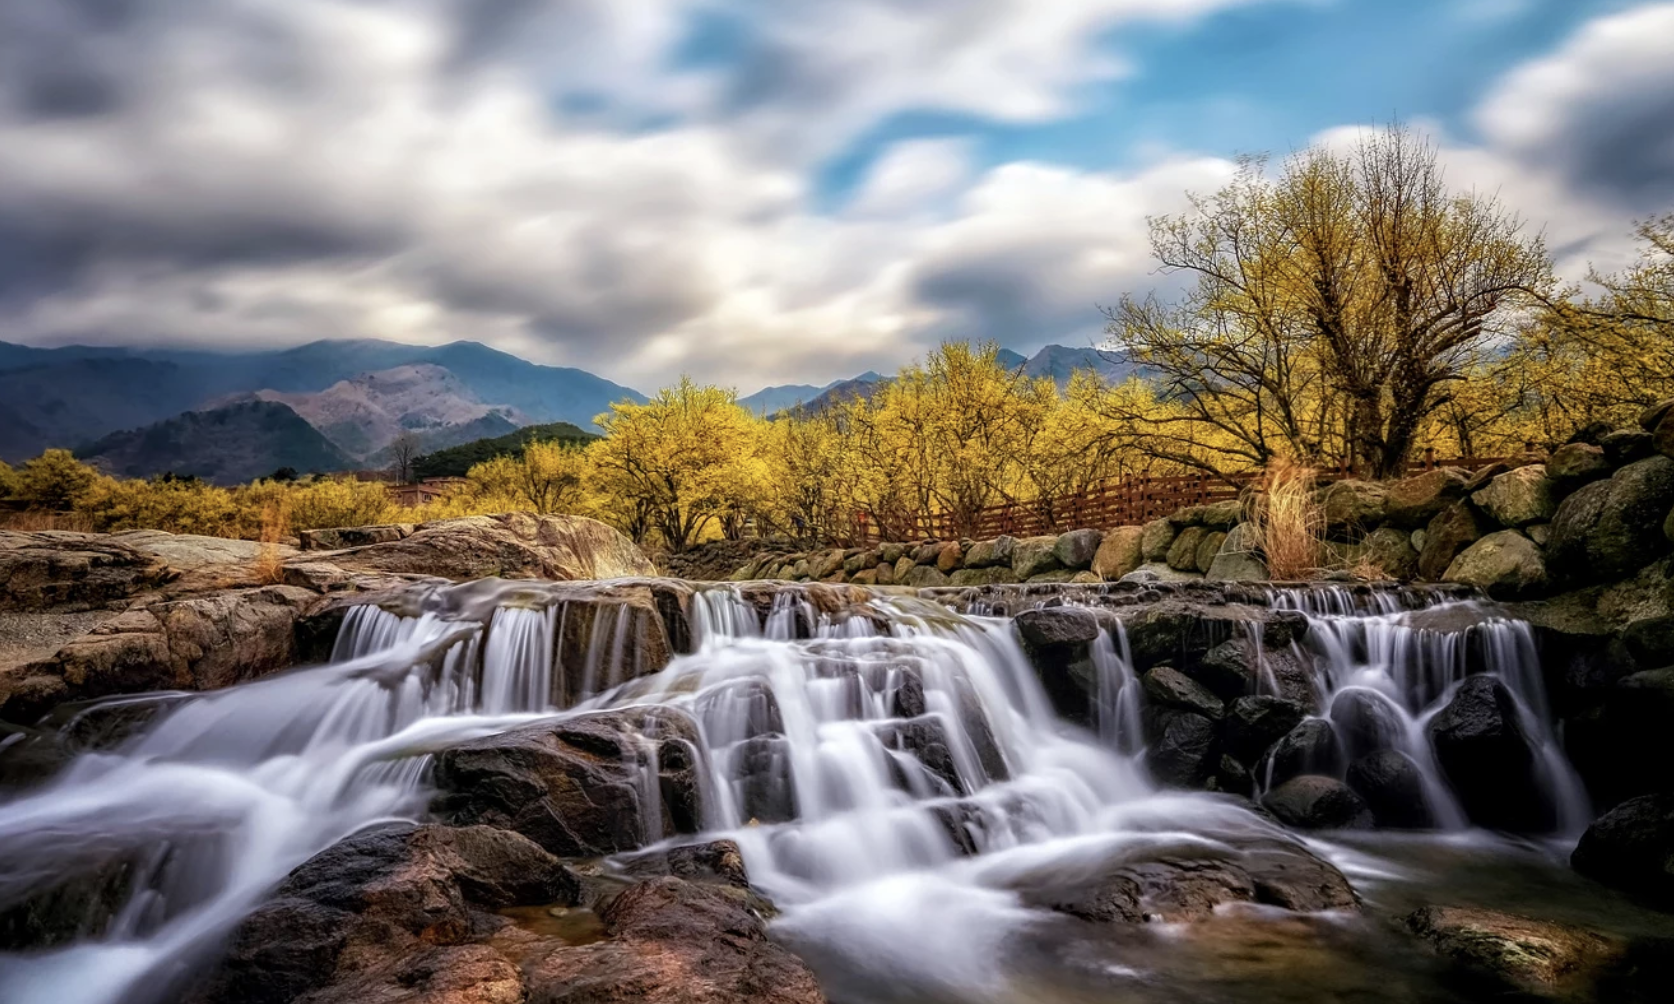 A Collection Of Waterfall Photos To Spruce Up Your Weekend